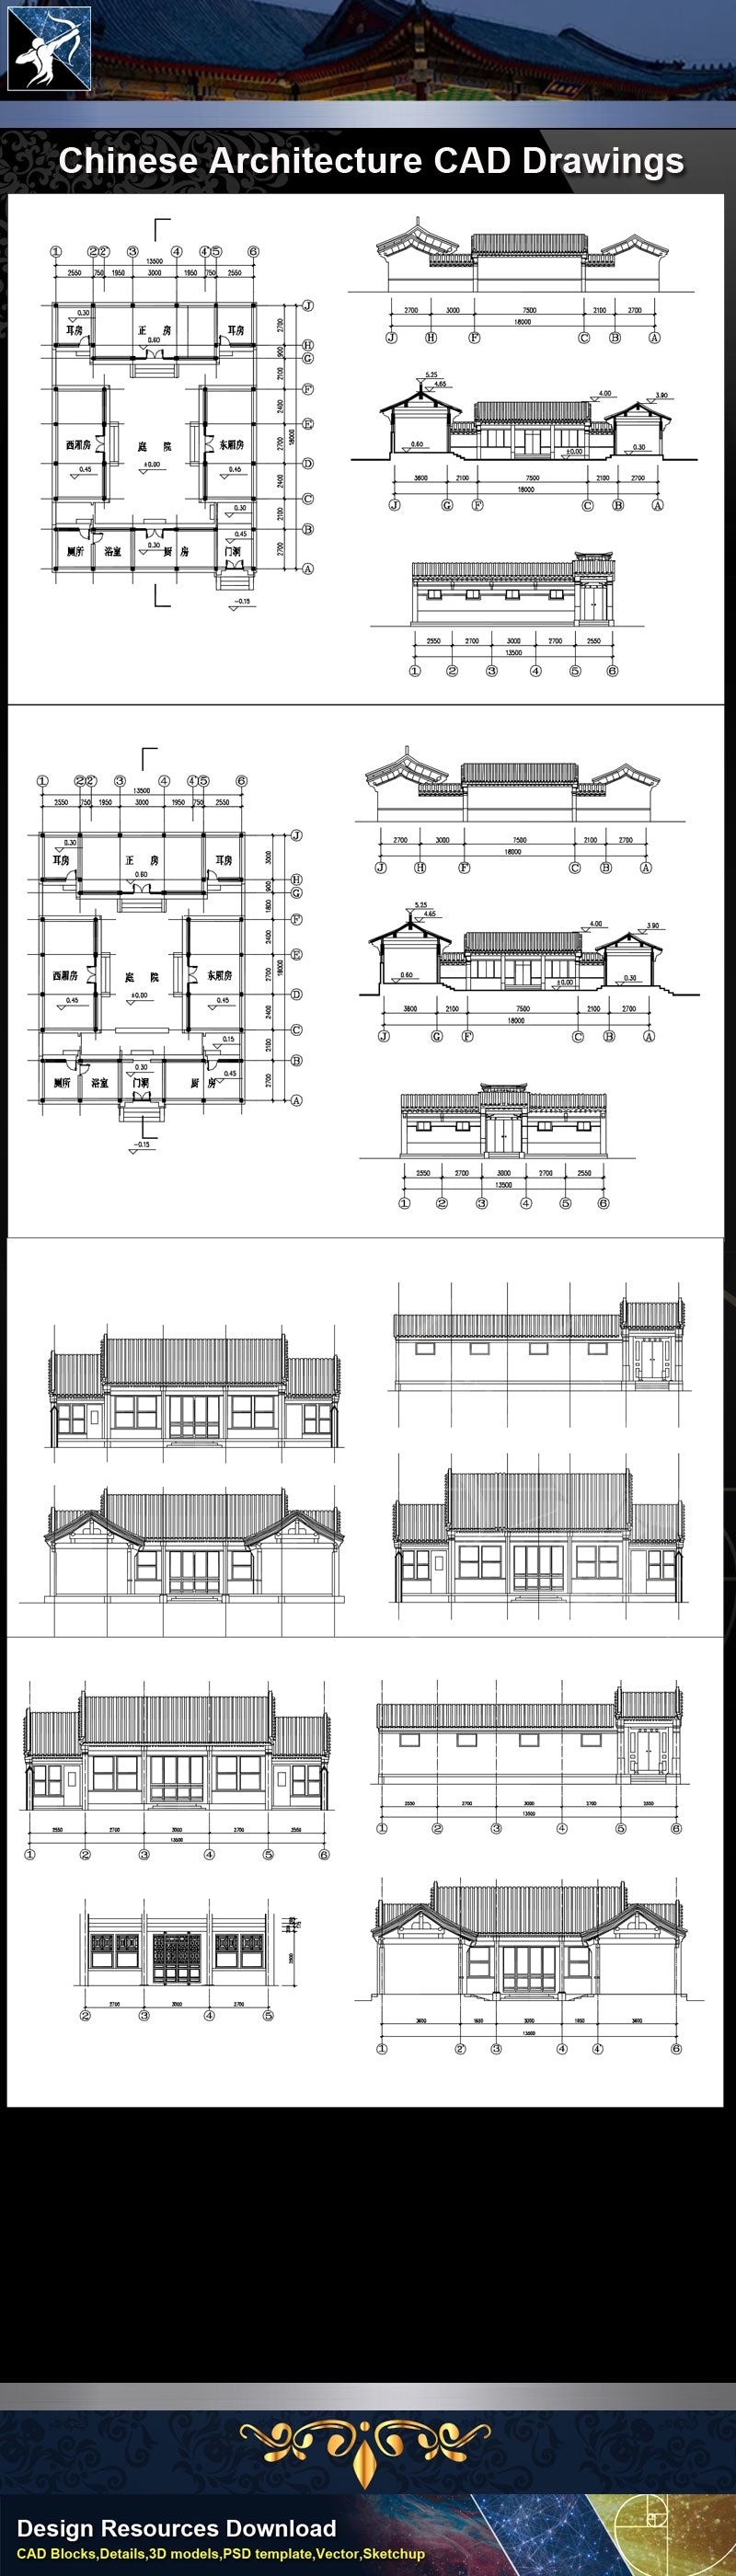 ★Chinese Architecture CAD Drawings-Chinese Courtyard